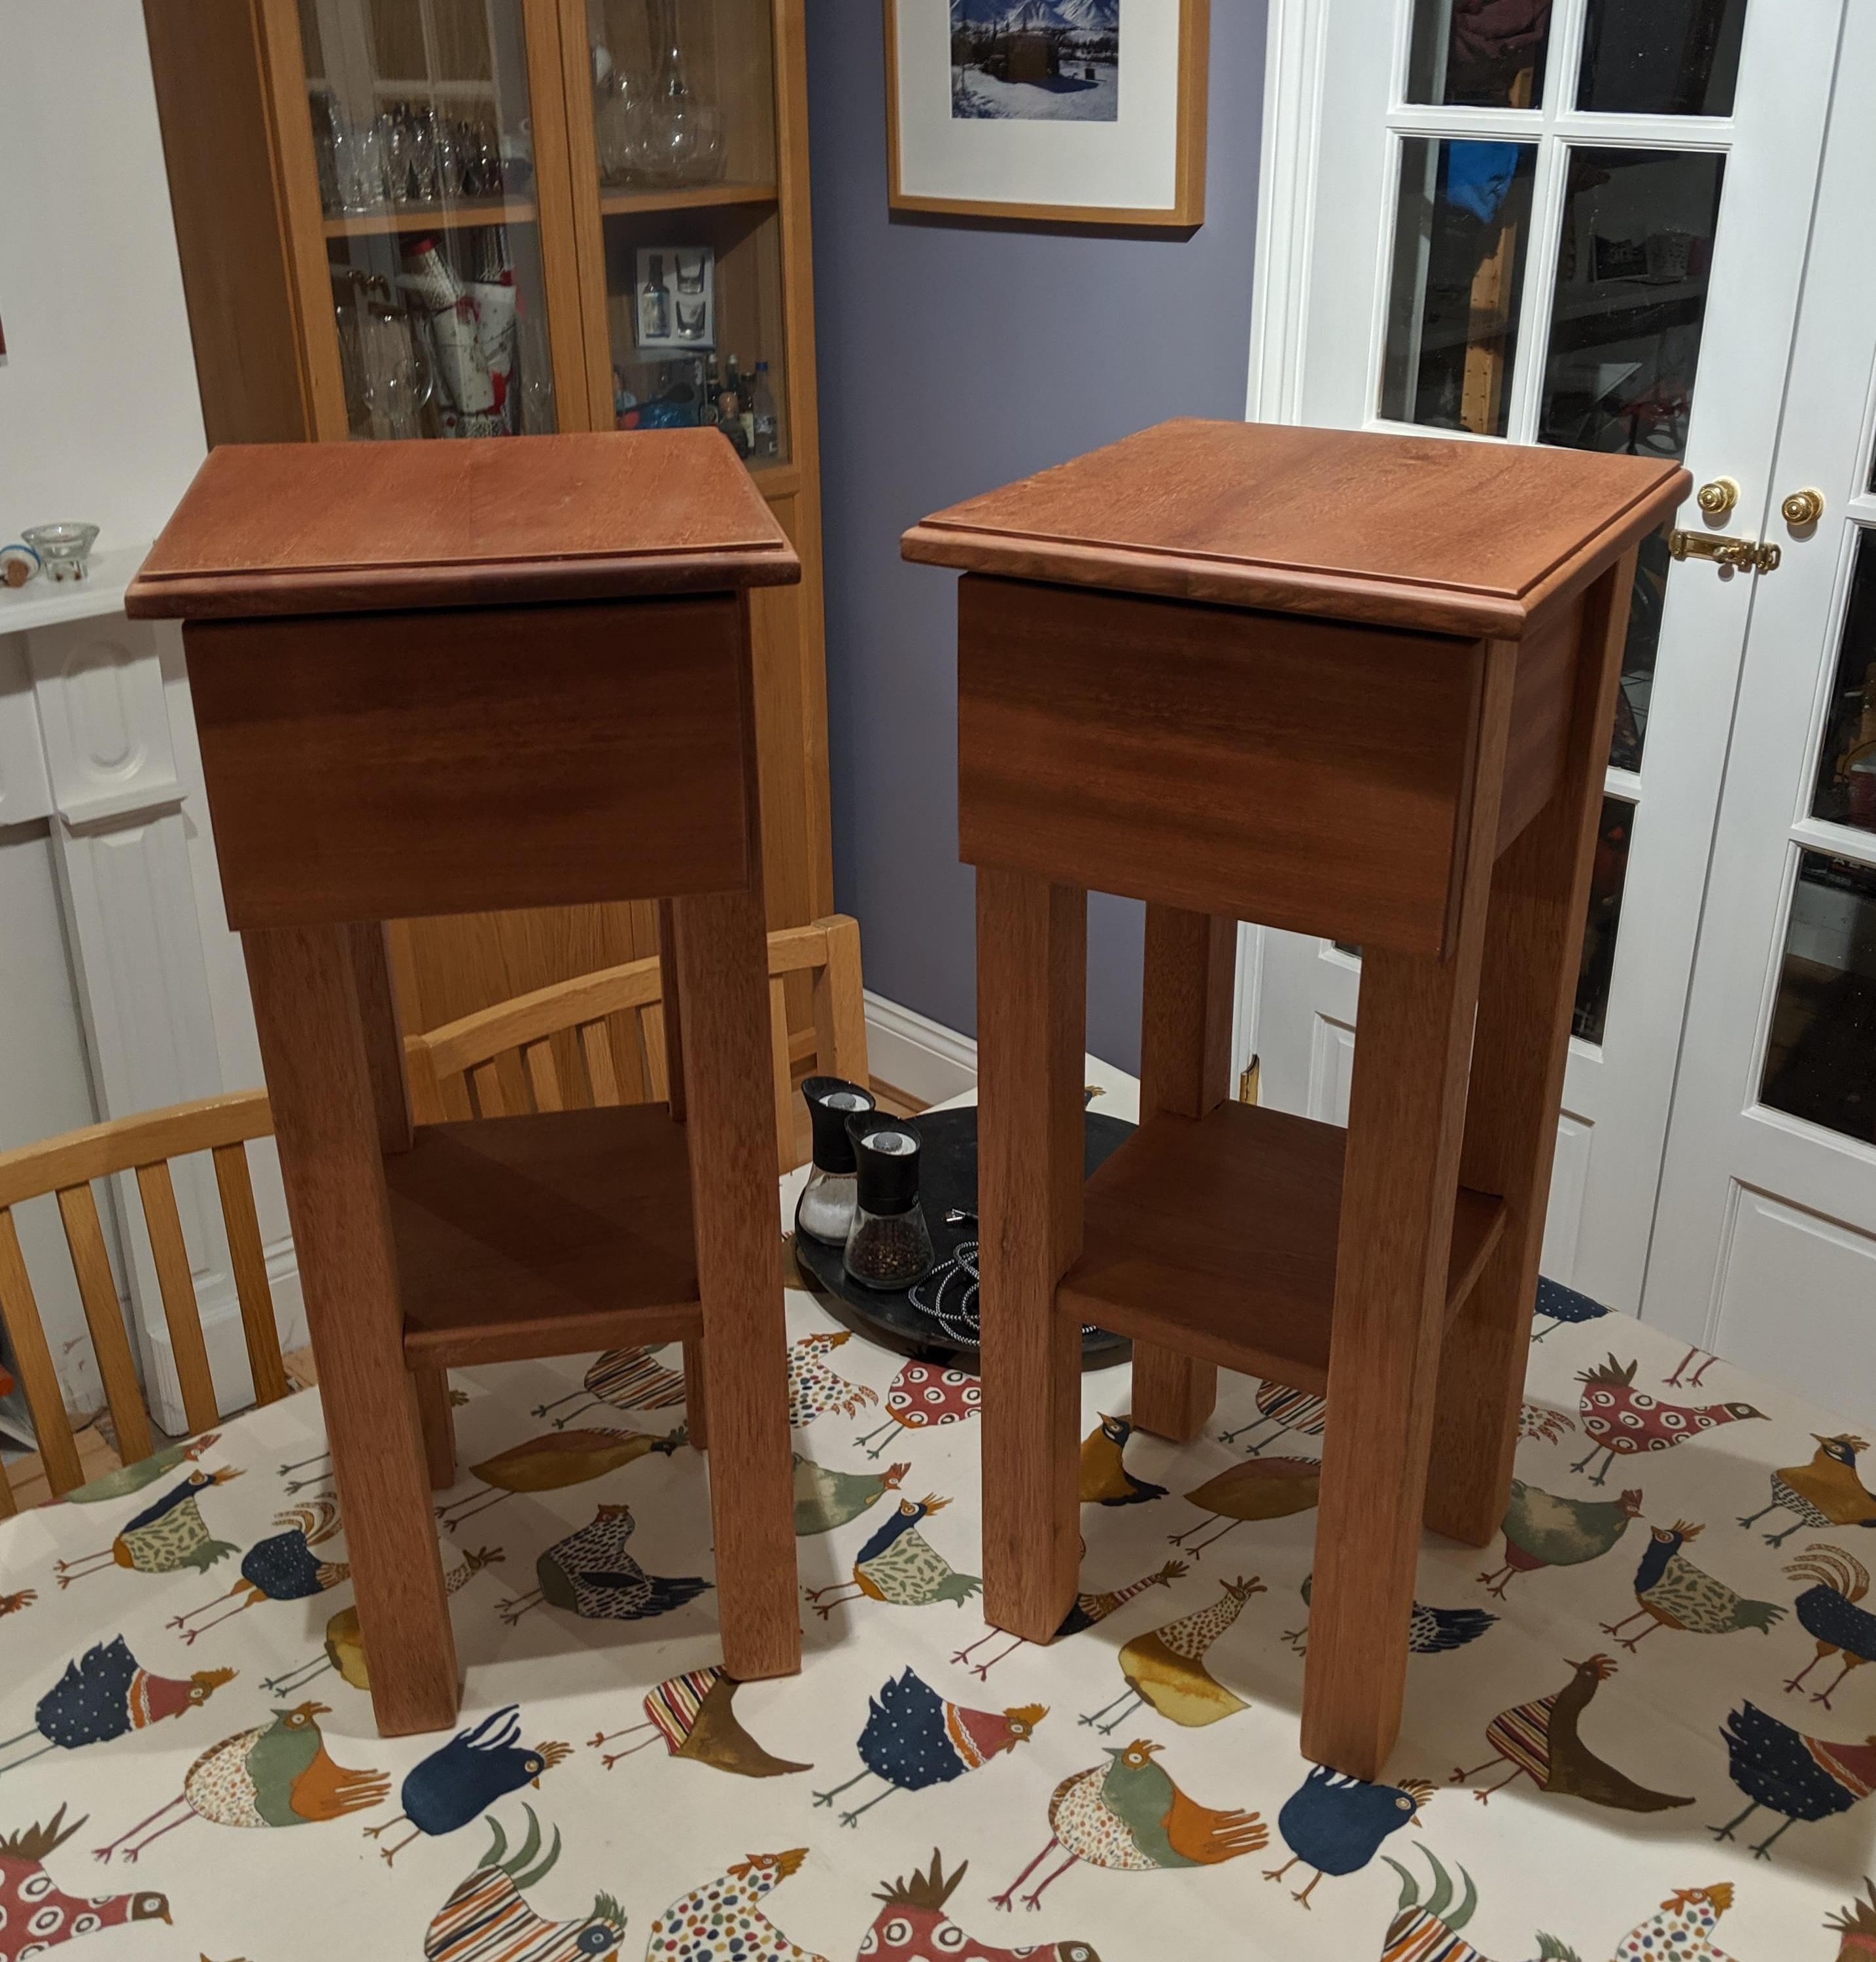 Pair of wooden nightstands